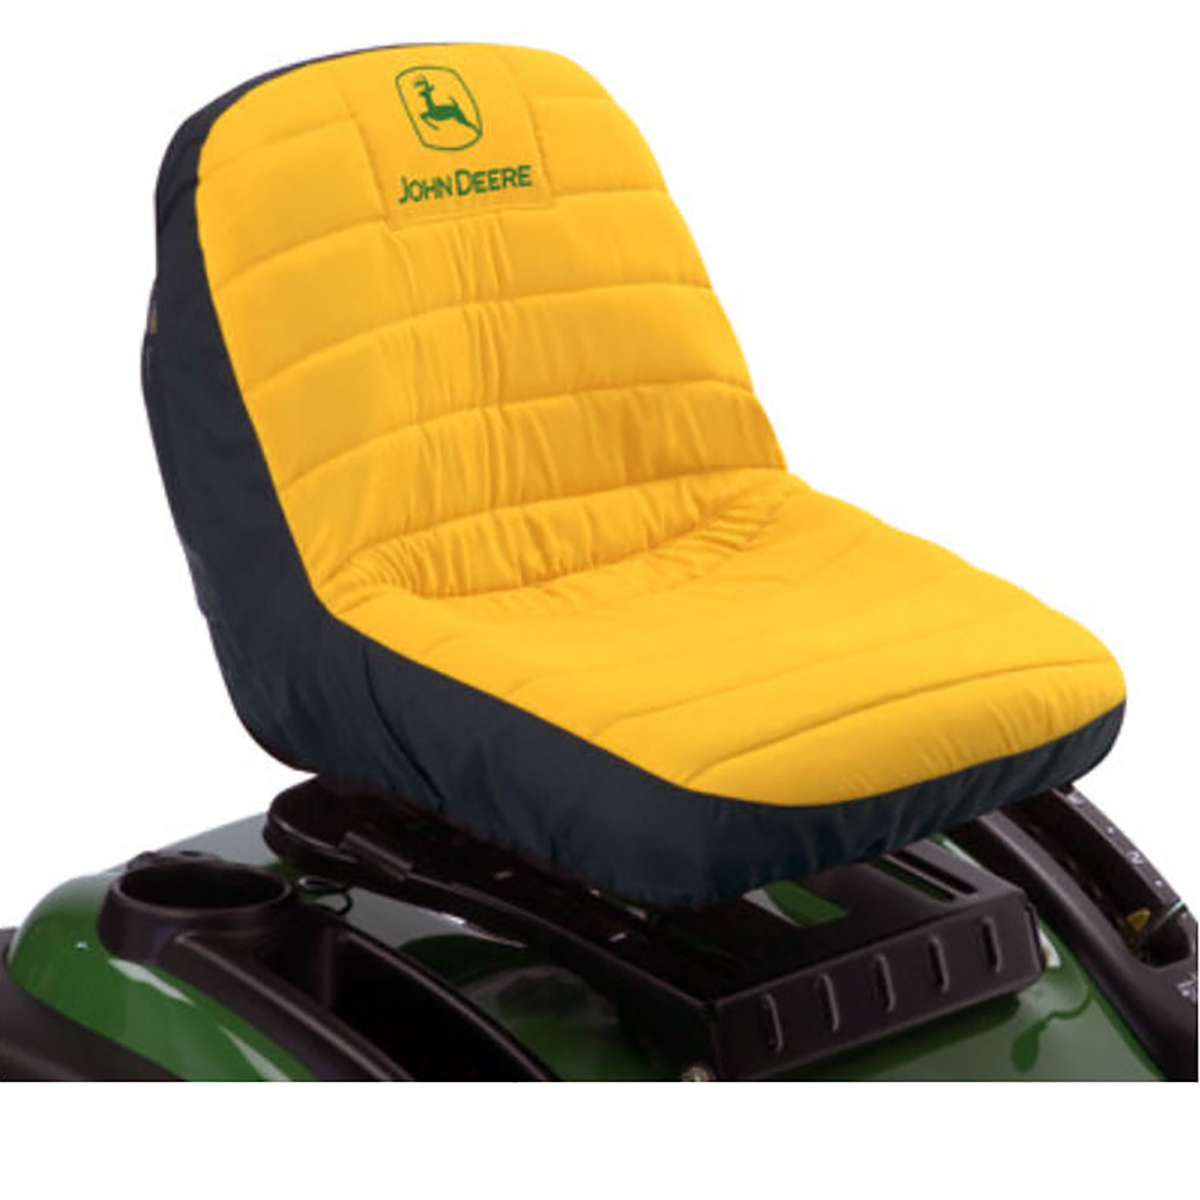 Features Protects New Seats Renews Old Cushioned Seat For Extra Comfort Four Convenient Pockets Keep Tools And Gear Within Reach Elastic